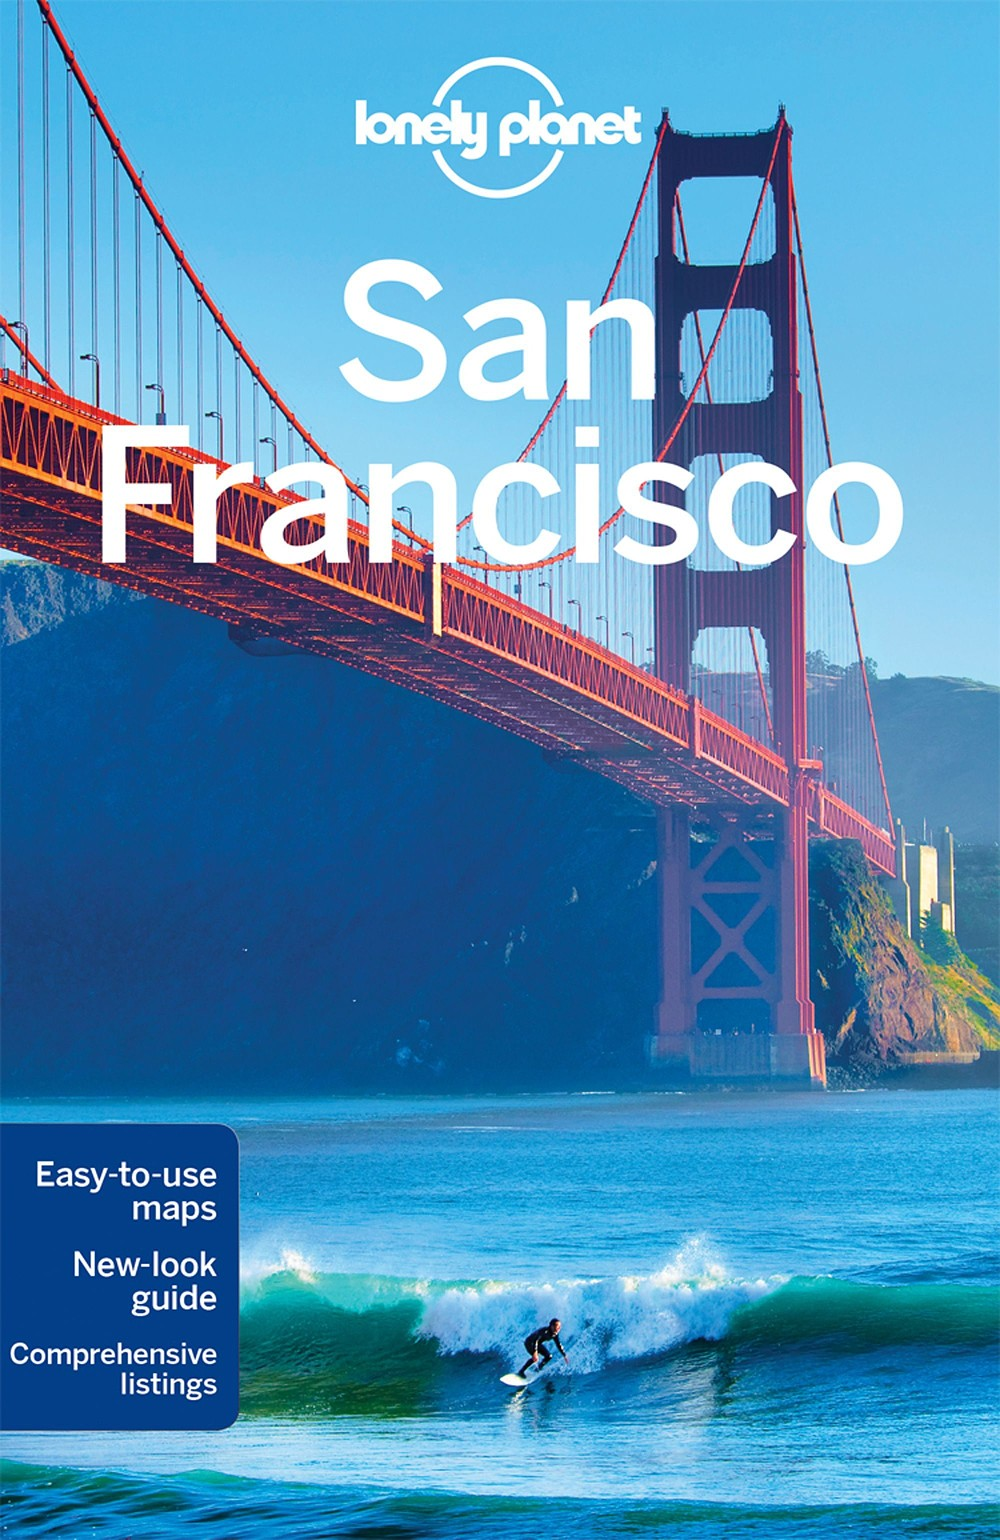 Lonely Planet San Francisco 10.